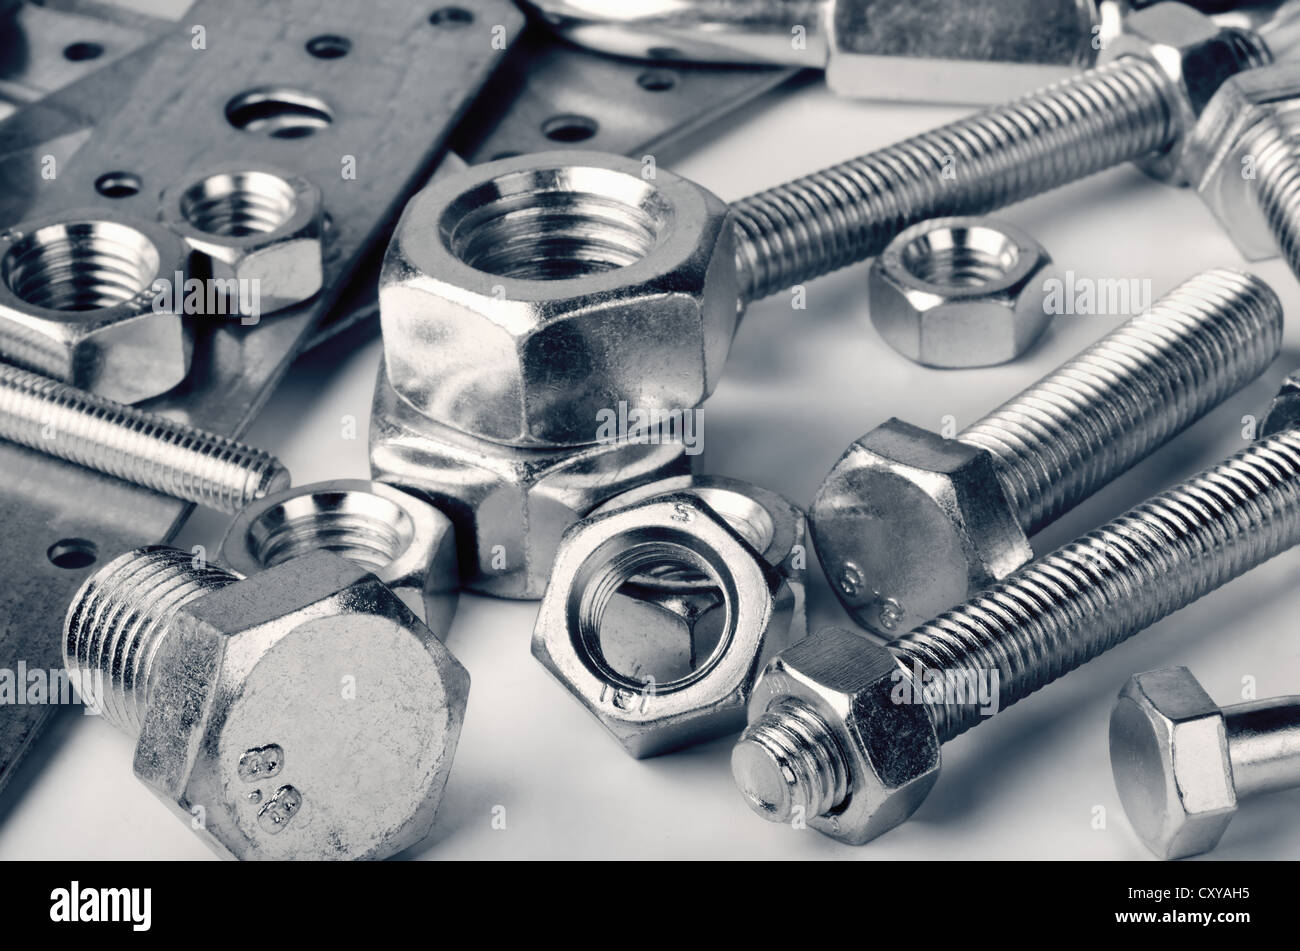 Close-up of various steel nuts and bolts - Stock Image